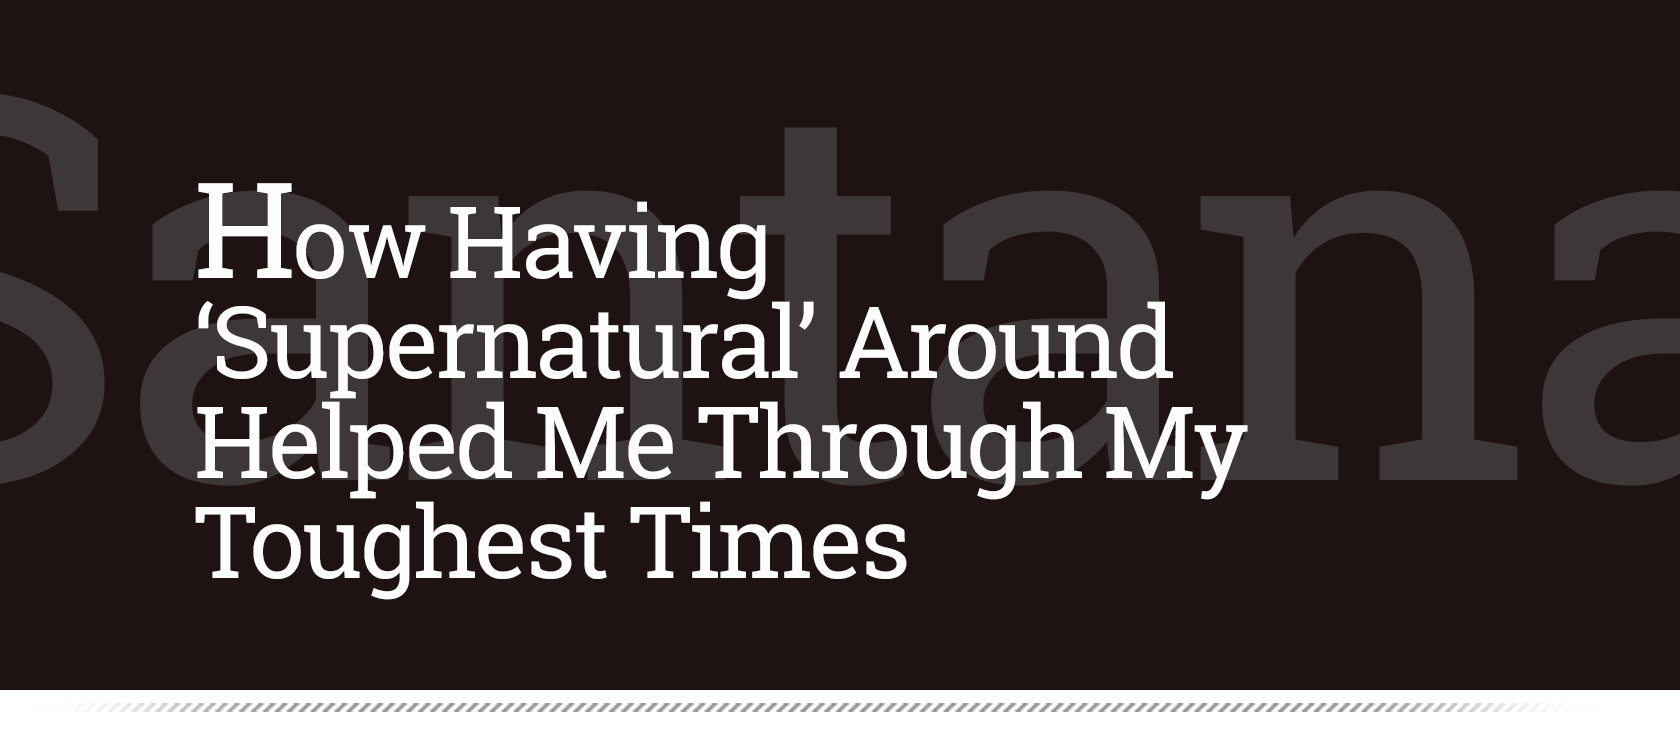 How Having 'Supernatural' Around Helped Me Through My Toughest Times